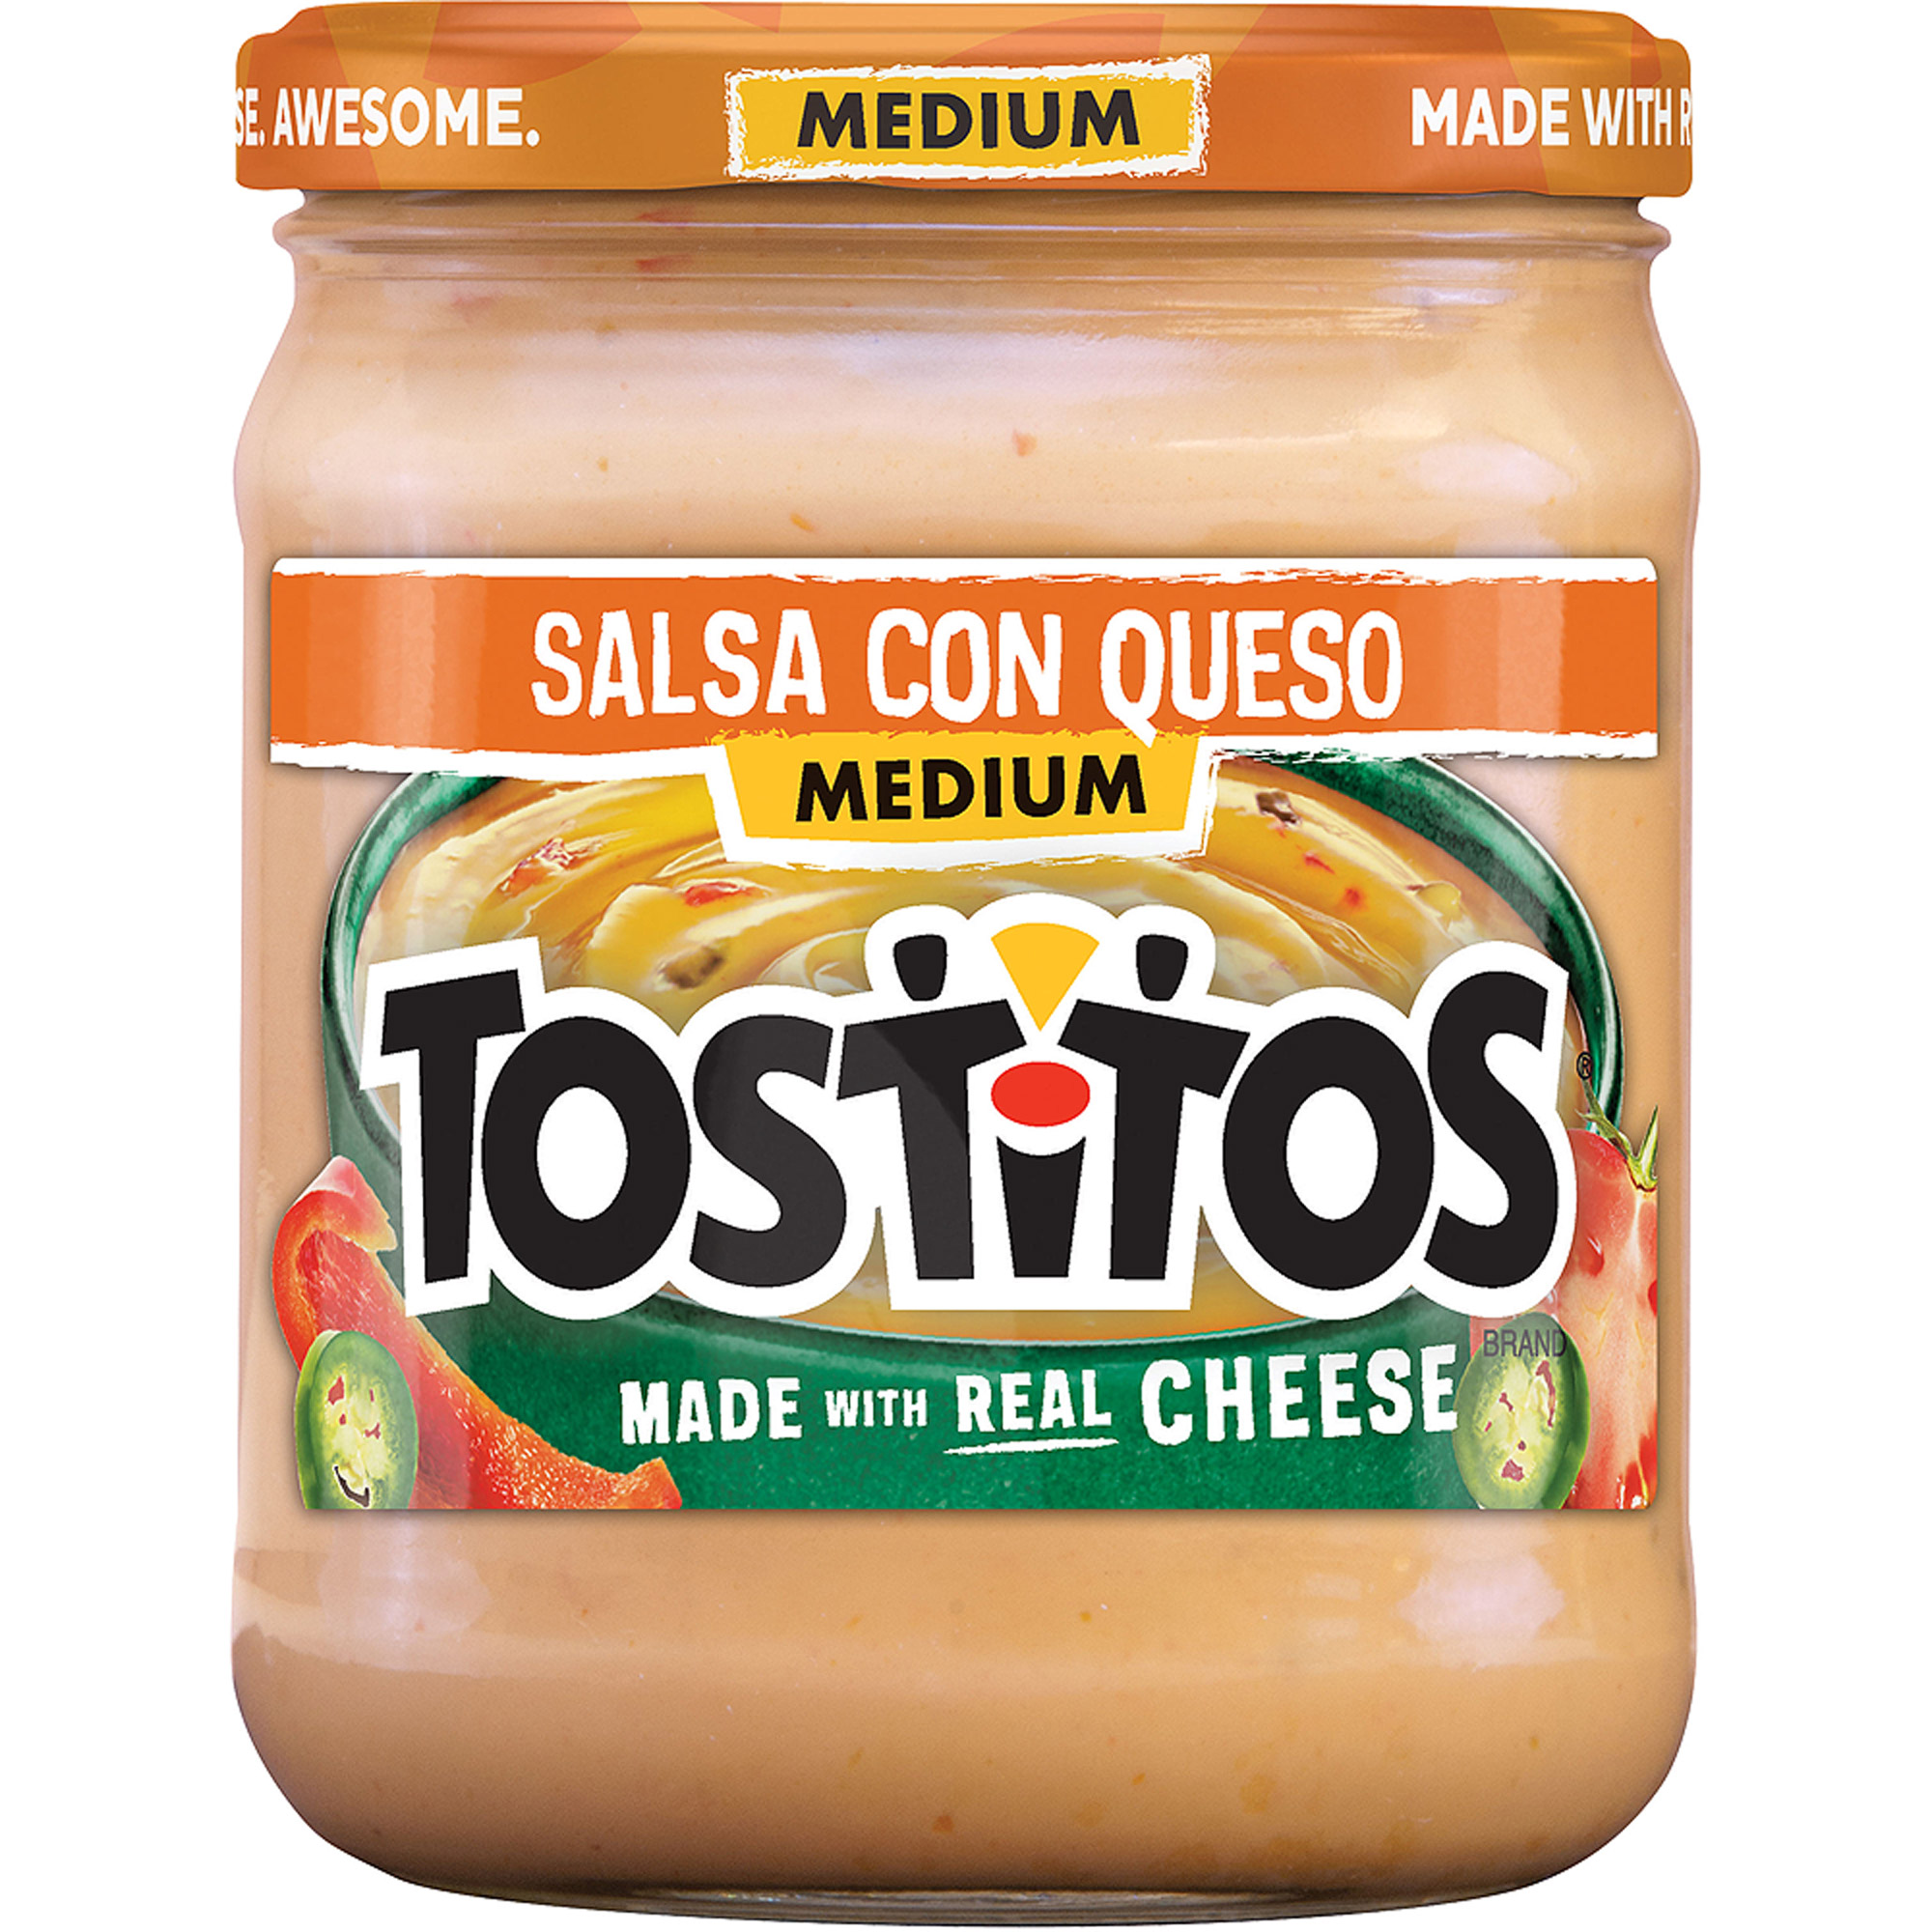 Tostitos Medium Salsa Con Queso, 15 oz.